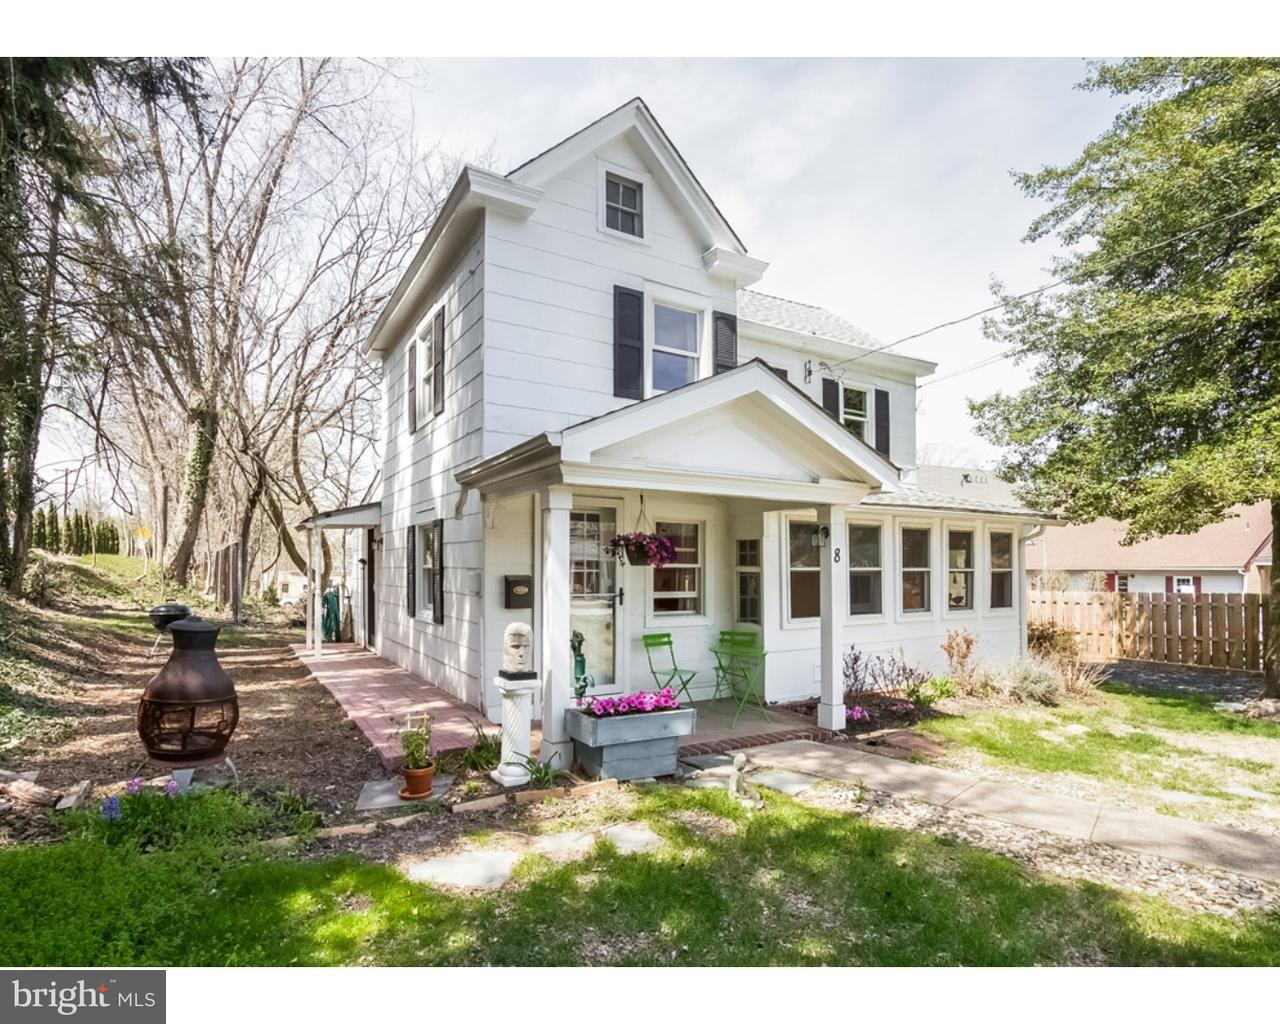 8 W COLLEGE AVE, YARDLEY - Listed at $279,900, YARDLEY